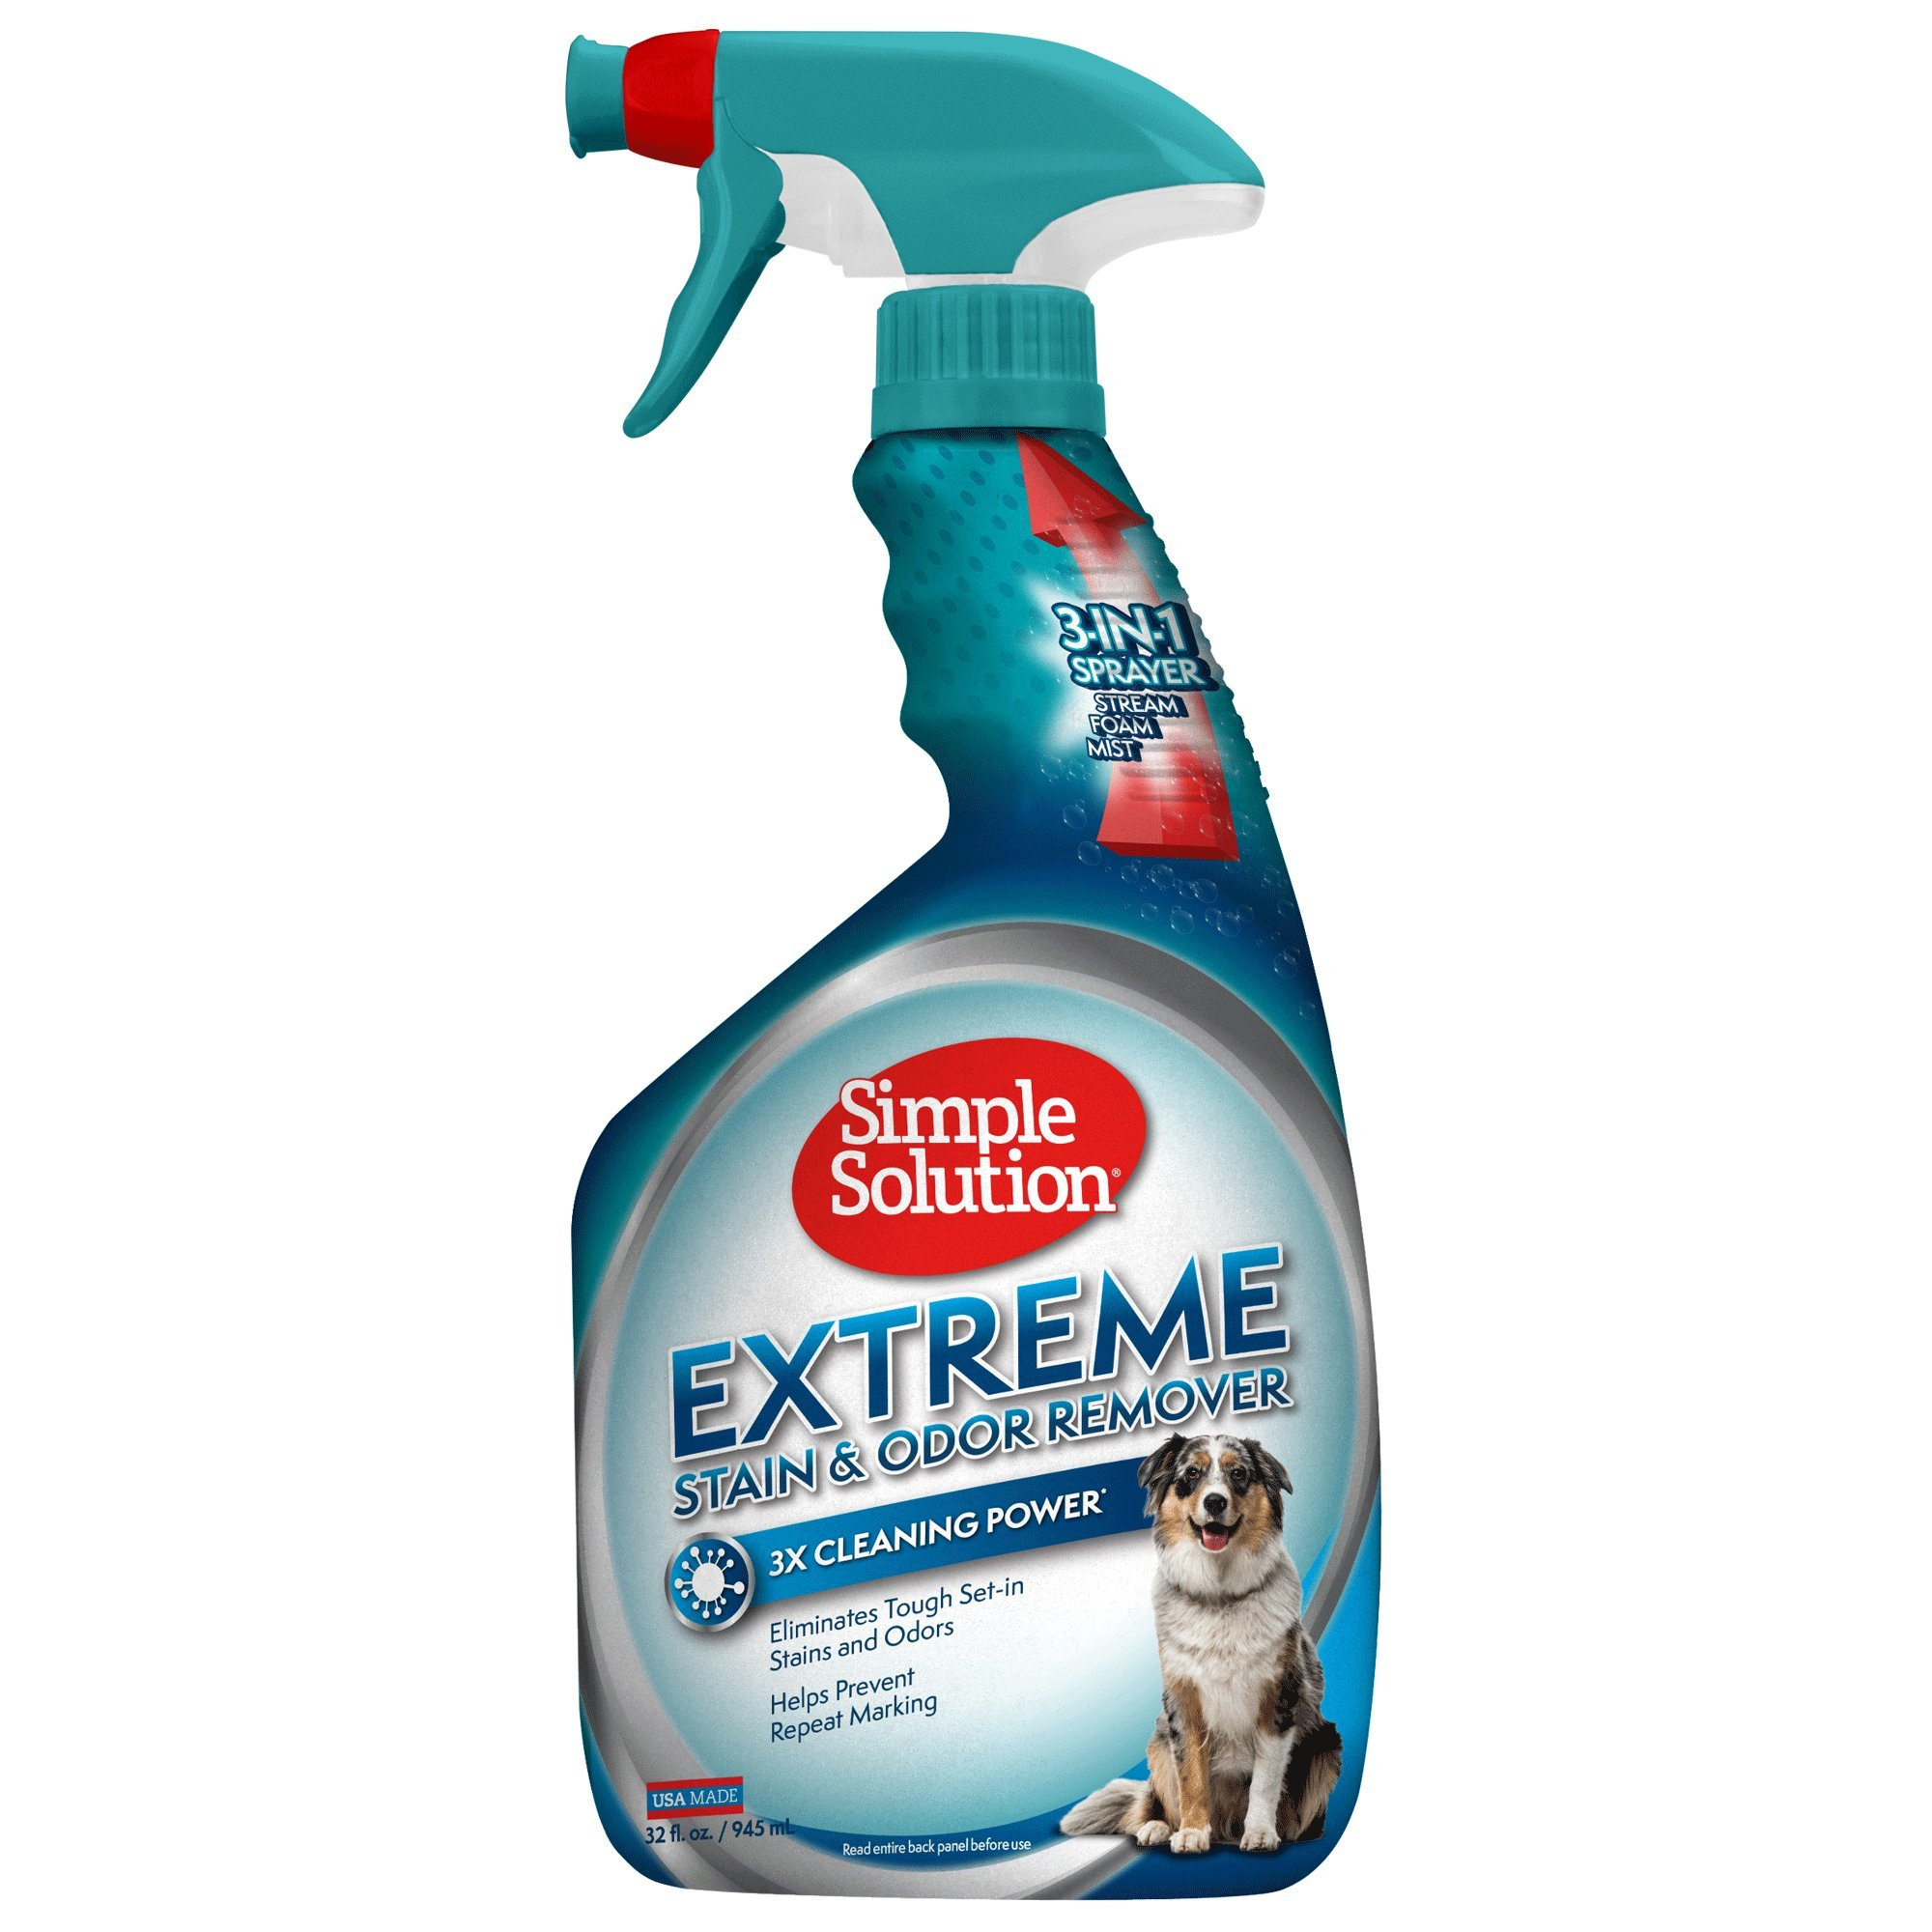 Simple Solution Extreme Stain and Odor Remover, 32-Ounce Spray Bottle by Simple Solution